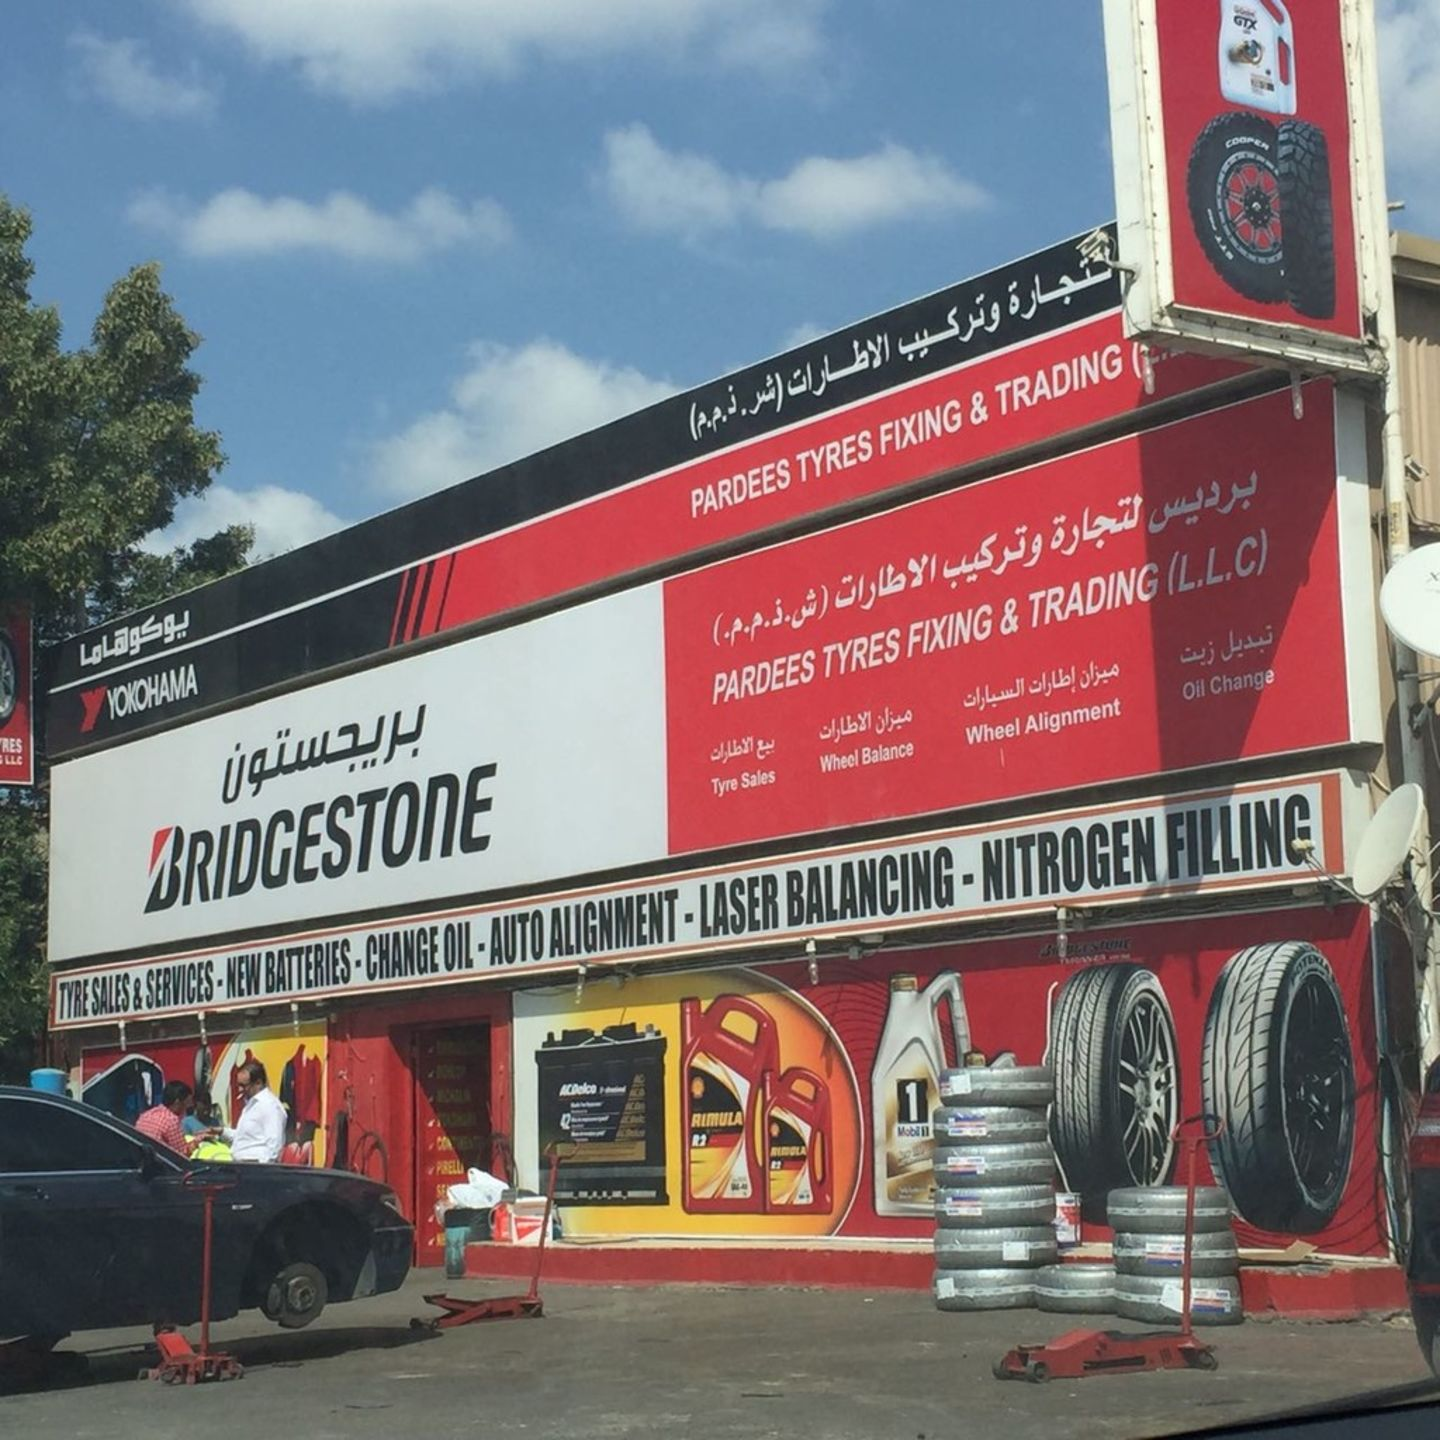 Walif-business-pardees-tyres-fixing-trading-1